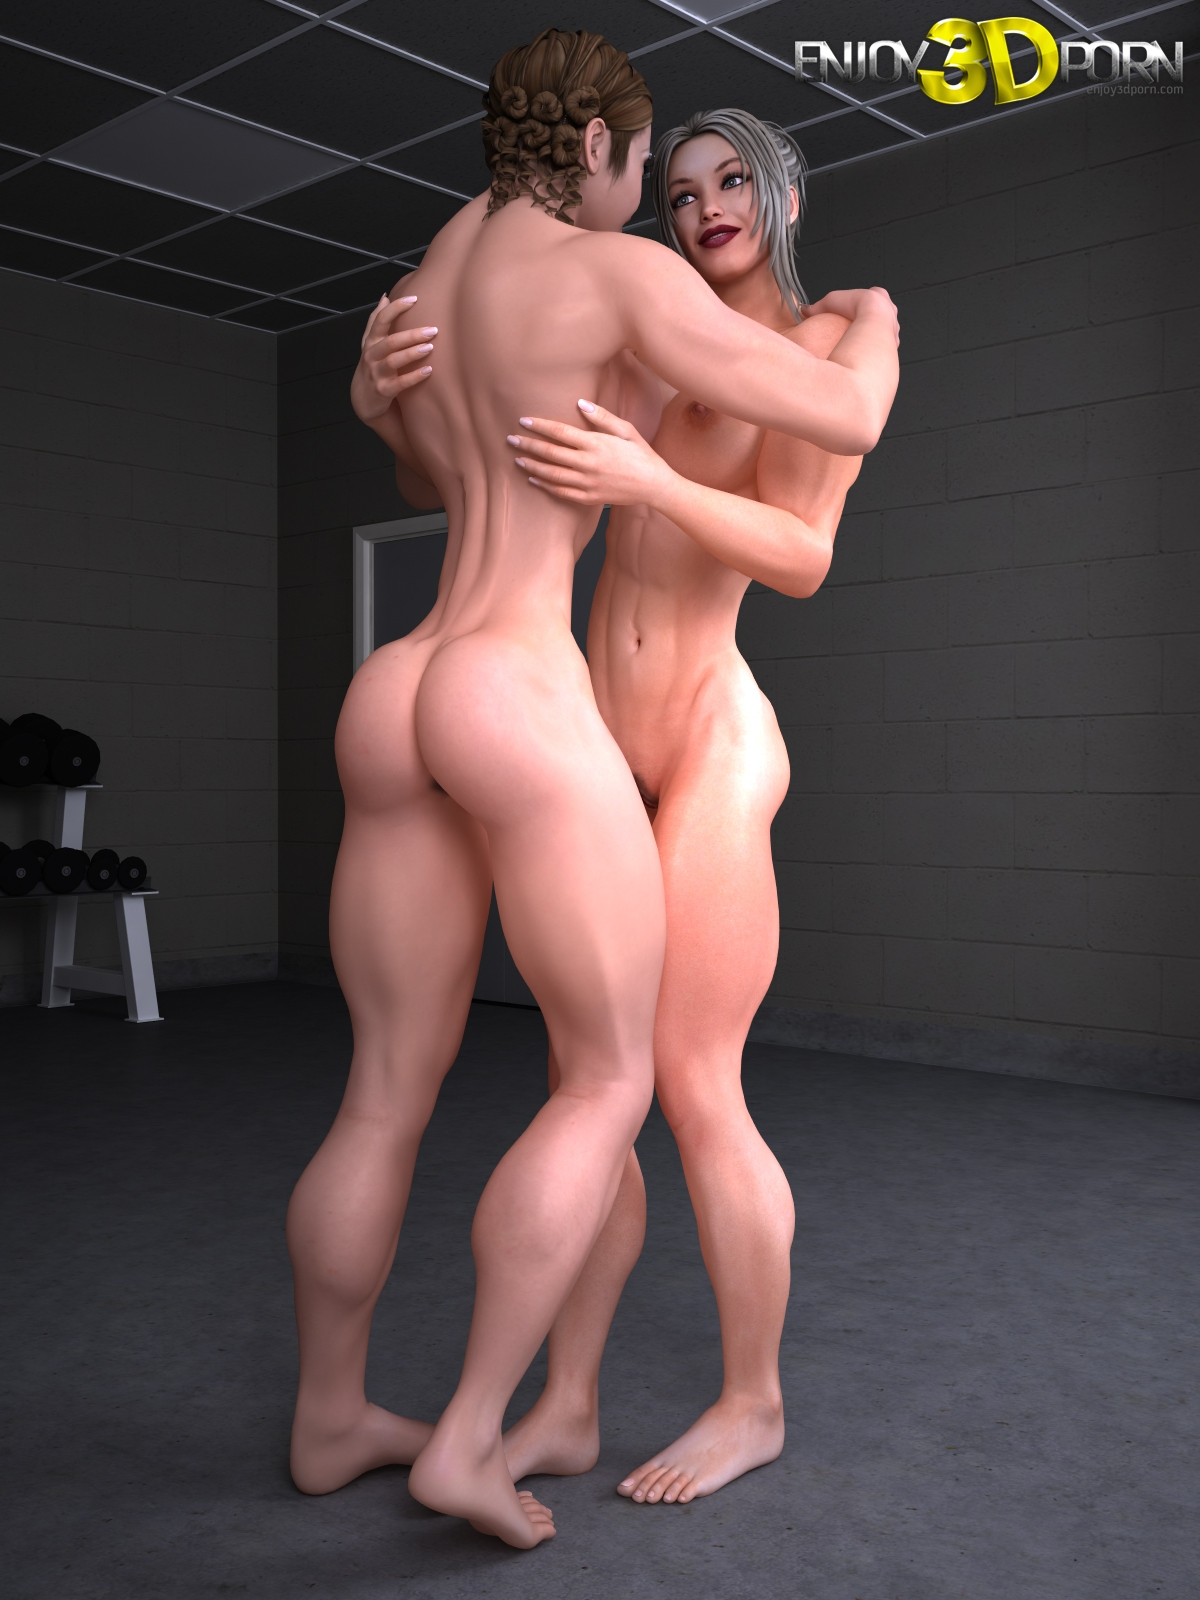 Free 3d muscle porn pron movies